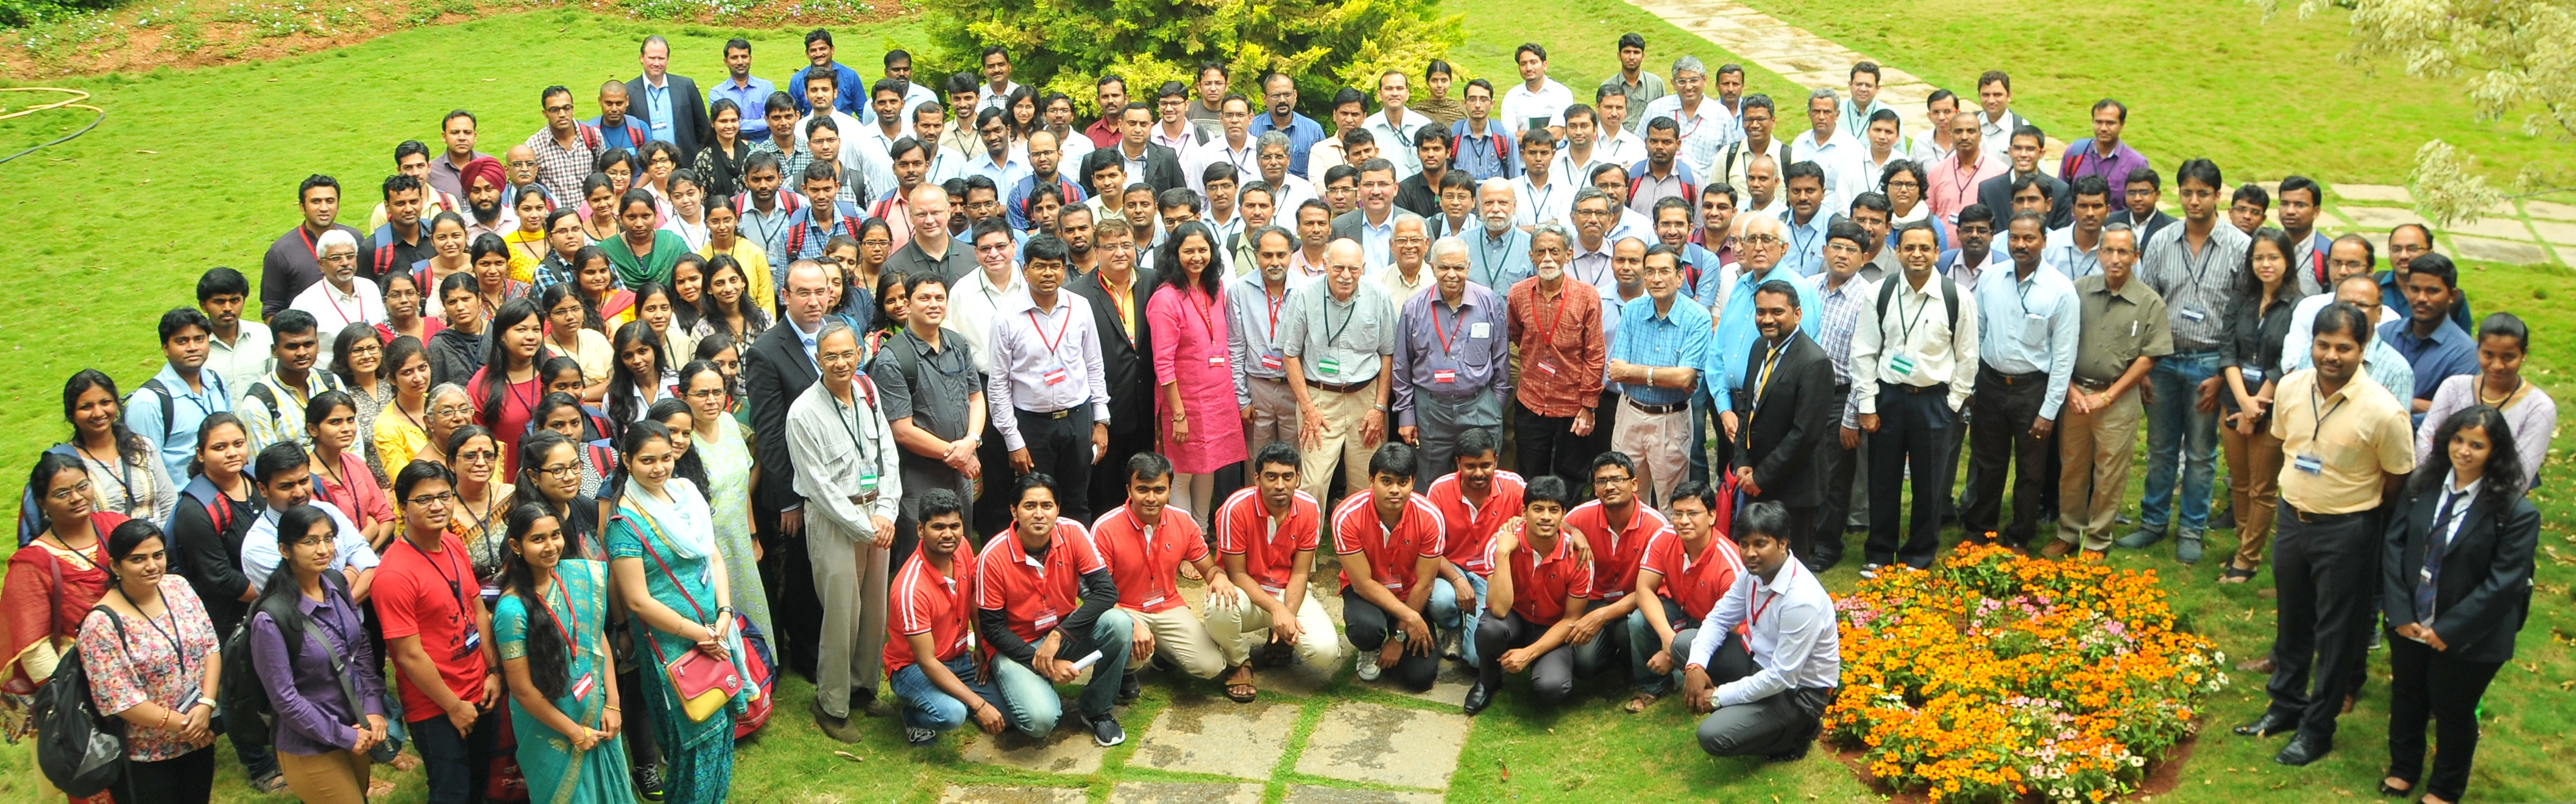 Group-Photo-IPS-2015-JNCASR-Banglaore-A